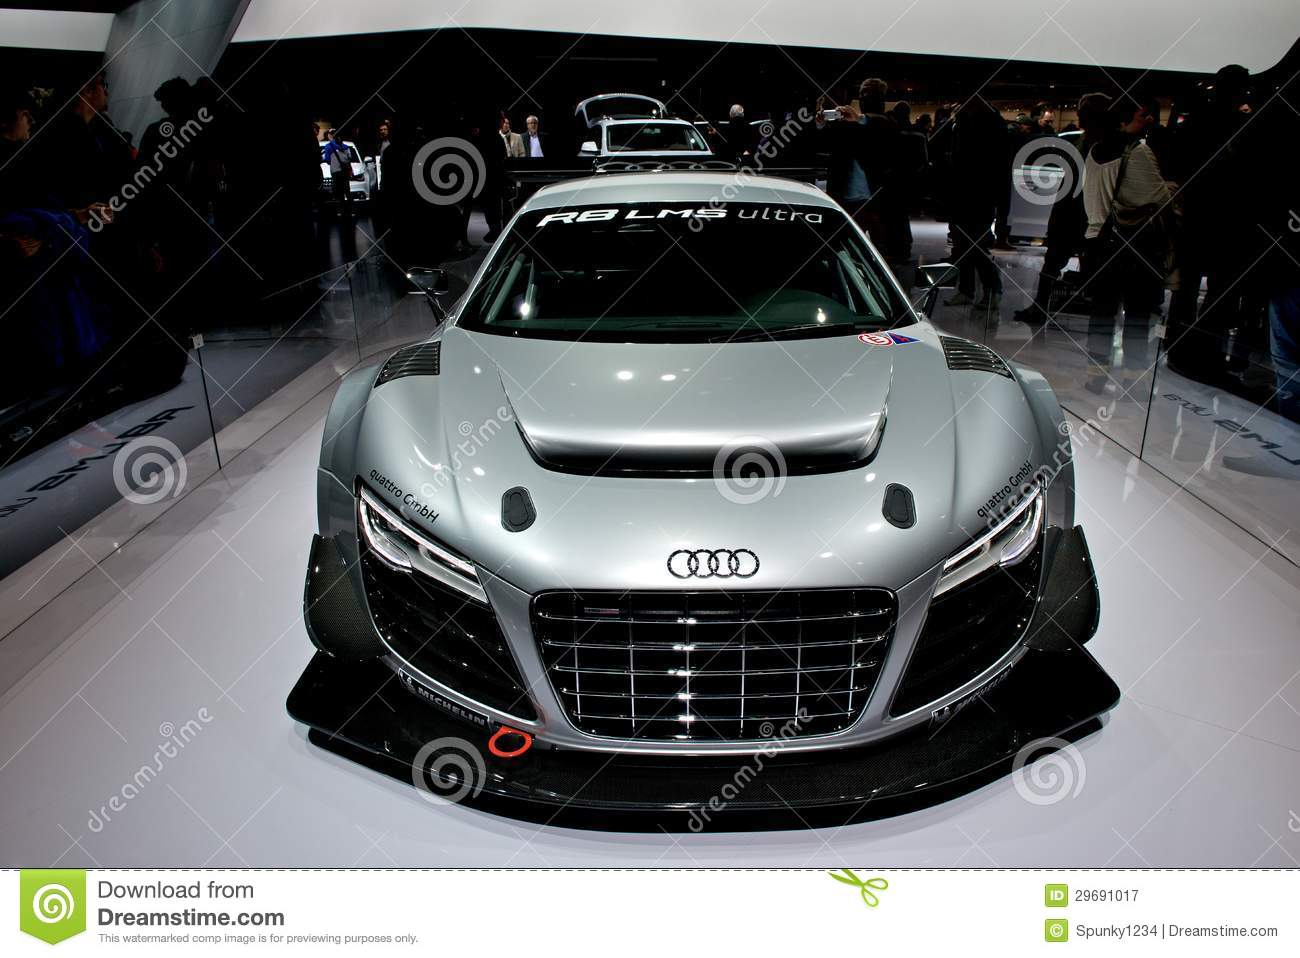 Audi r8 lms ultra for sale 11